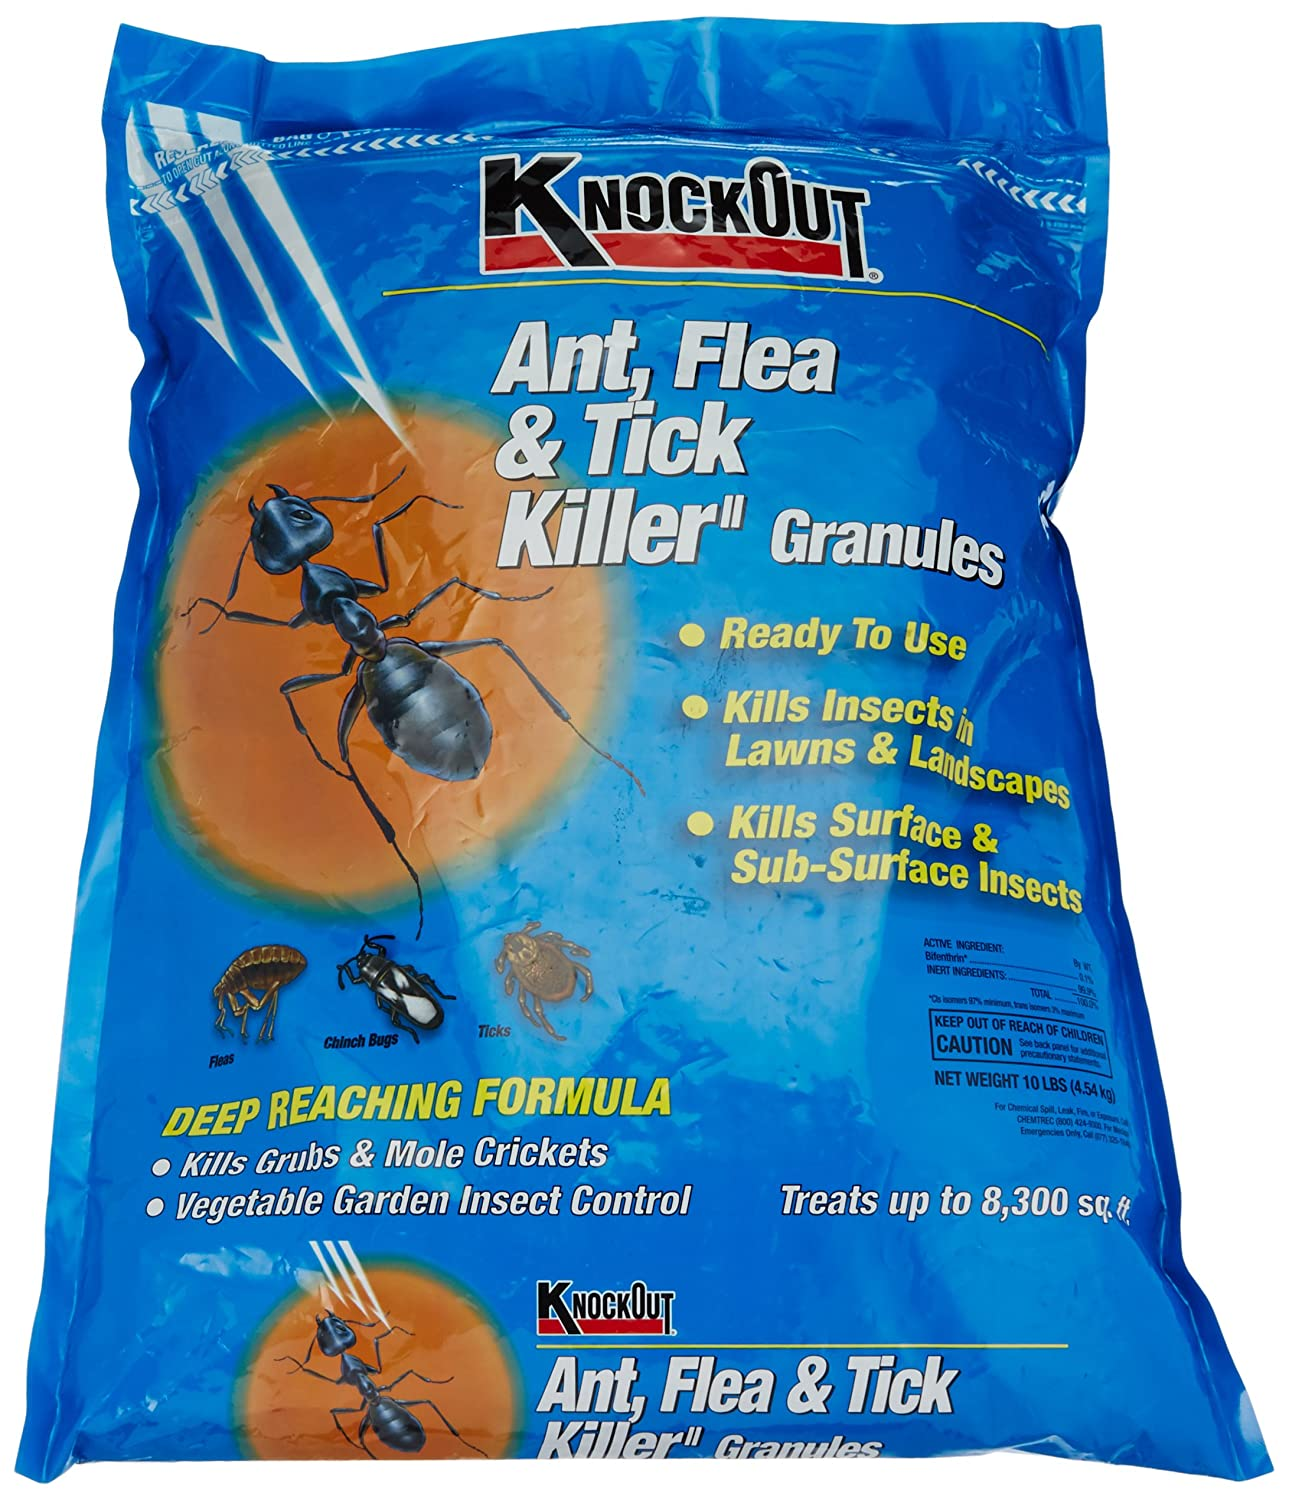 Amazon.com : Knock Out 342031.0 Ant, Flea and Tick Killer Granules ...